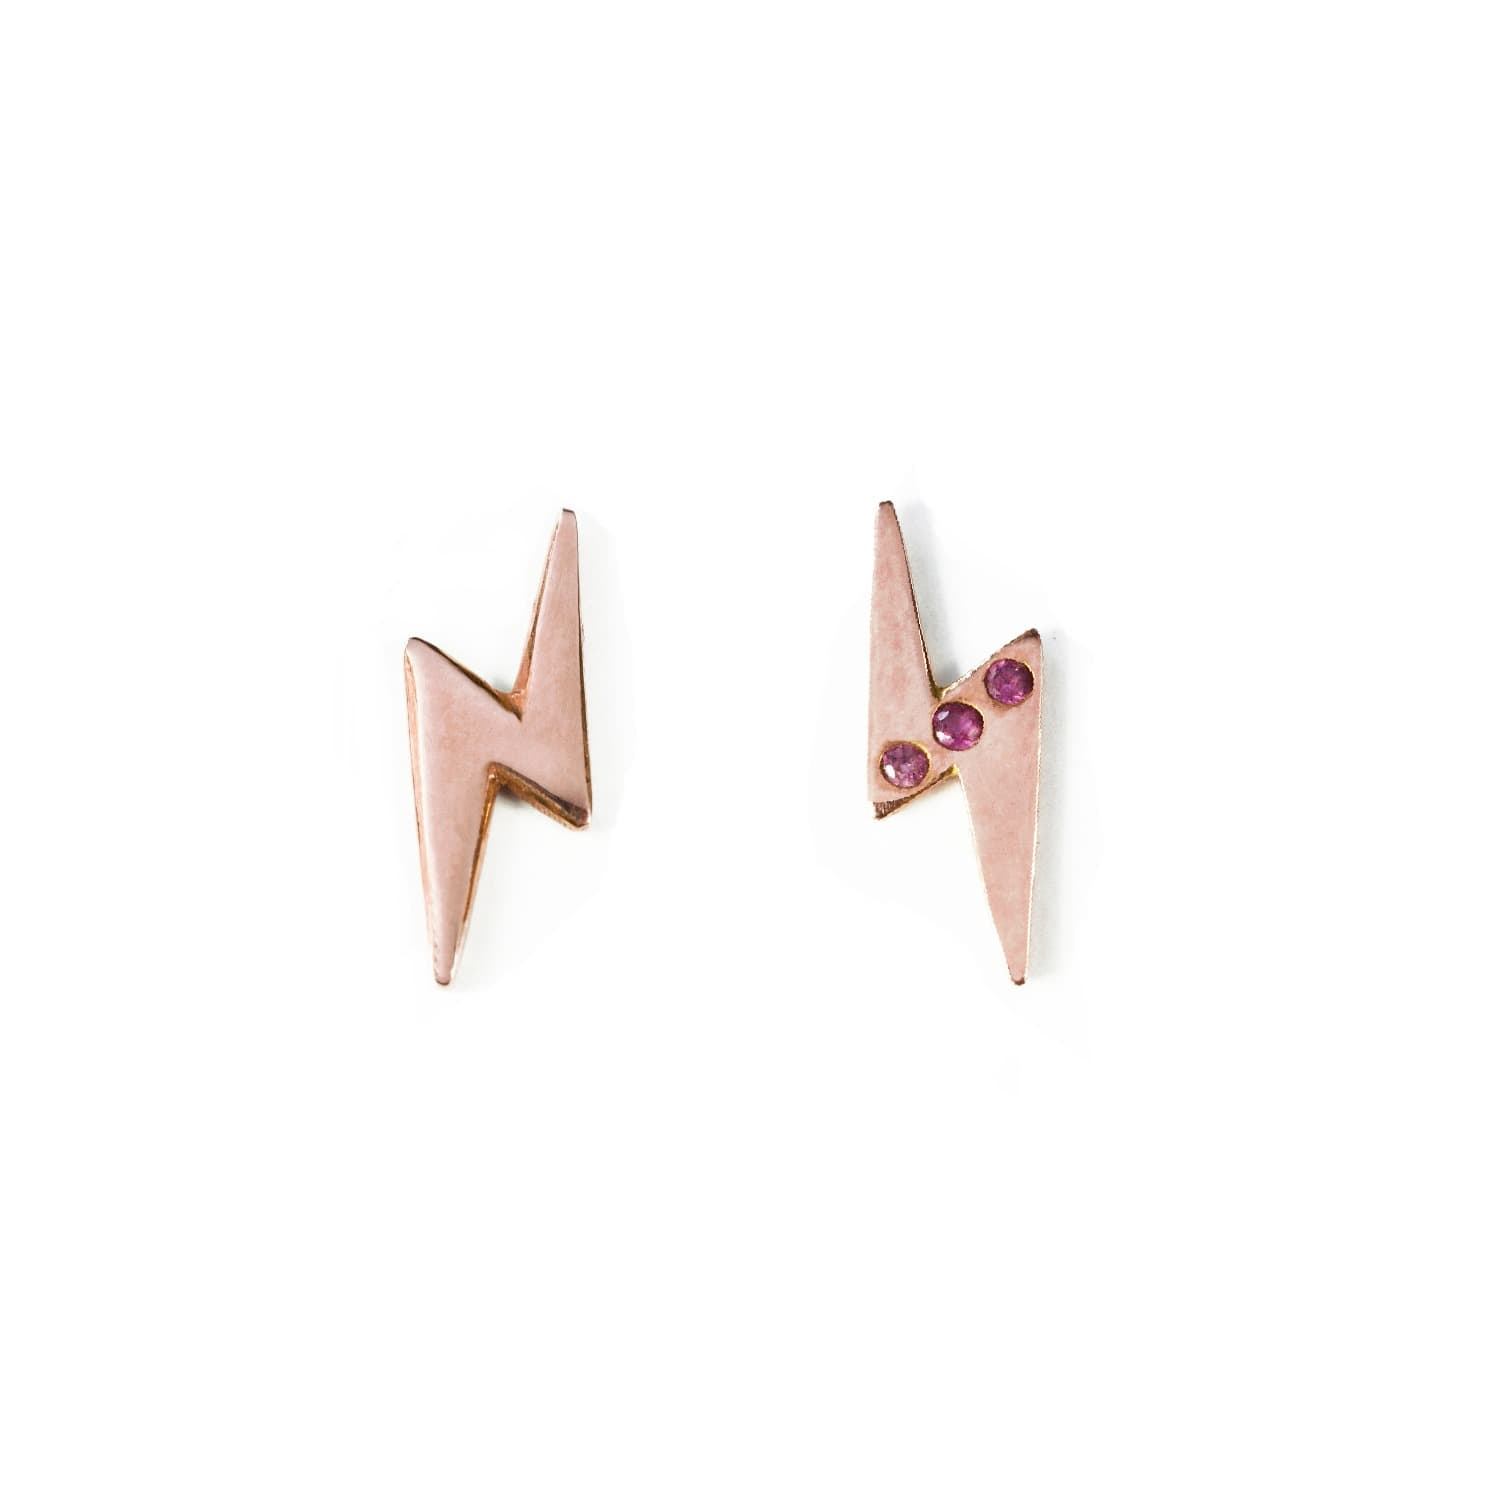 60d05d582 9ct Rose Gold Lightning Stud Earrings | BARK | Wolf & Badger